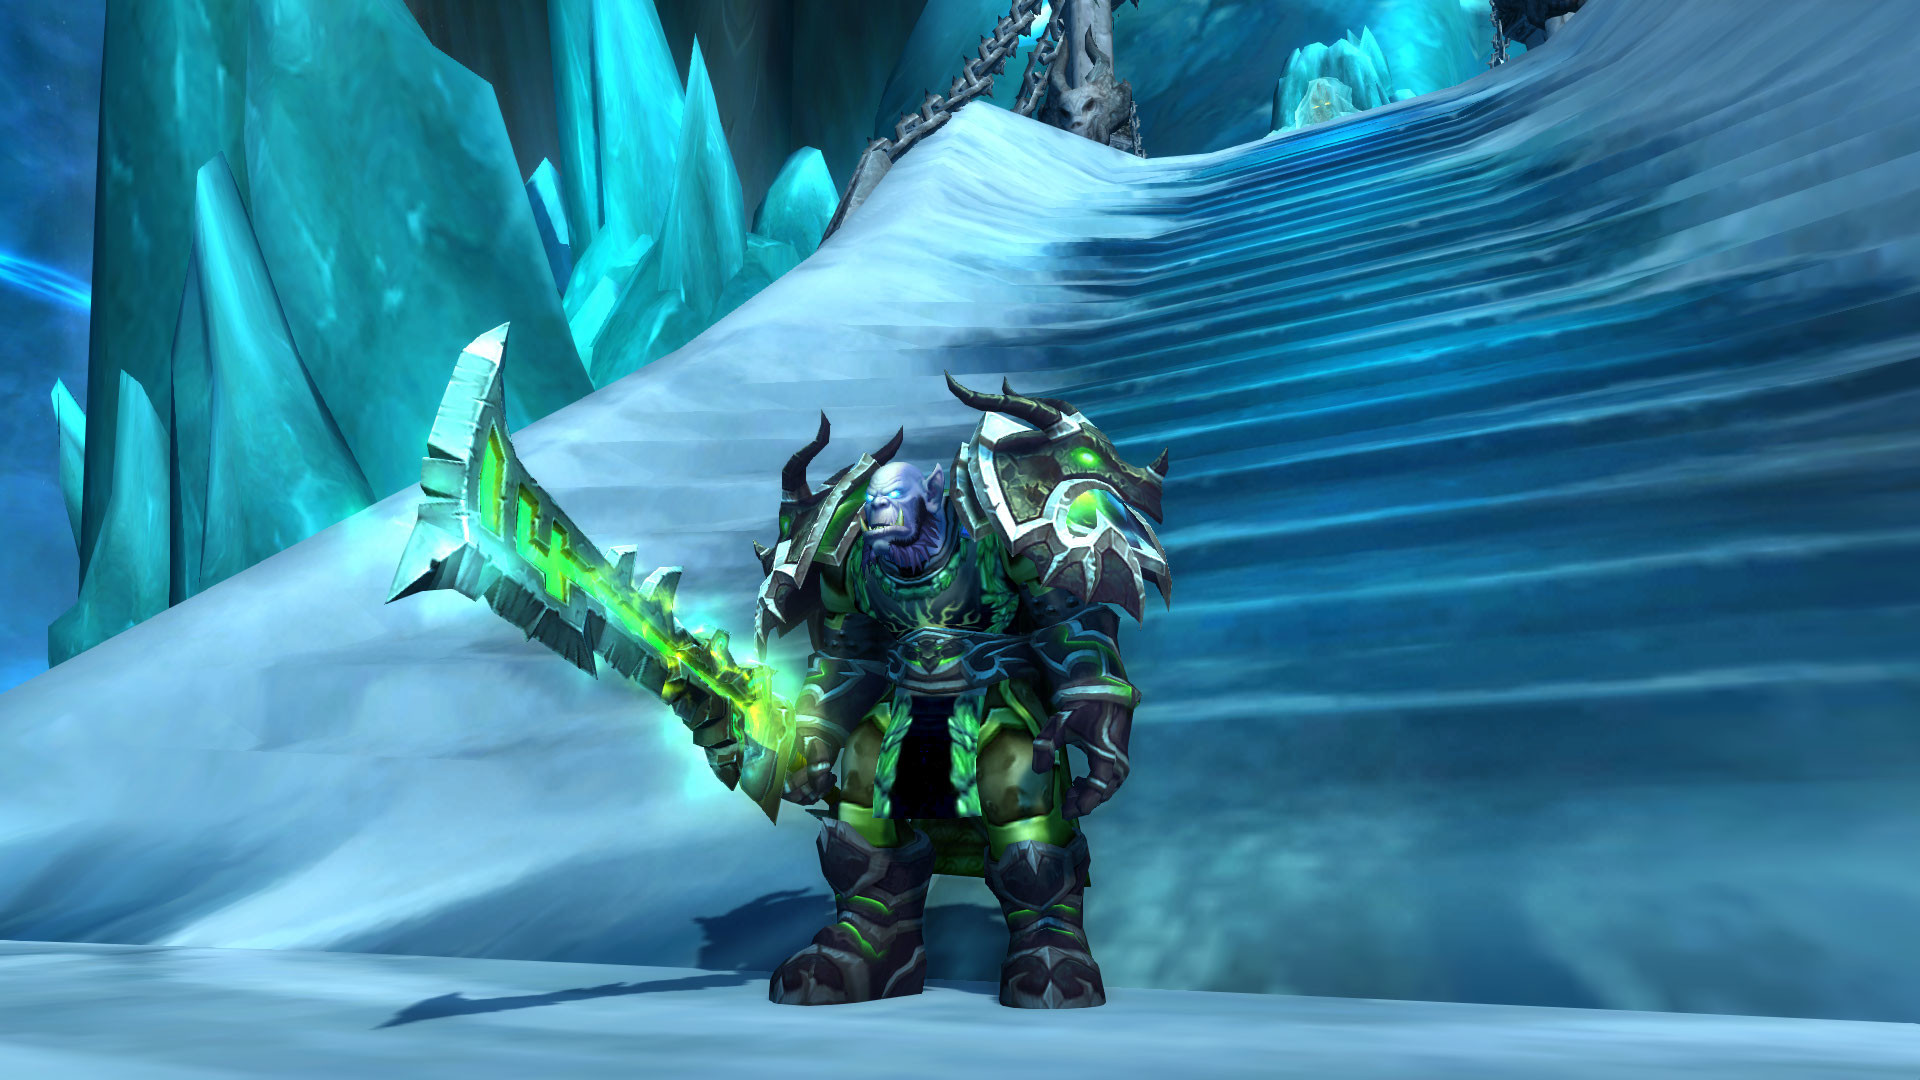 Unholy Death Knight mog. Can't seem to find the right helmet to go with  that set.